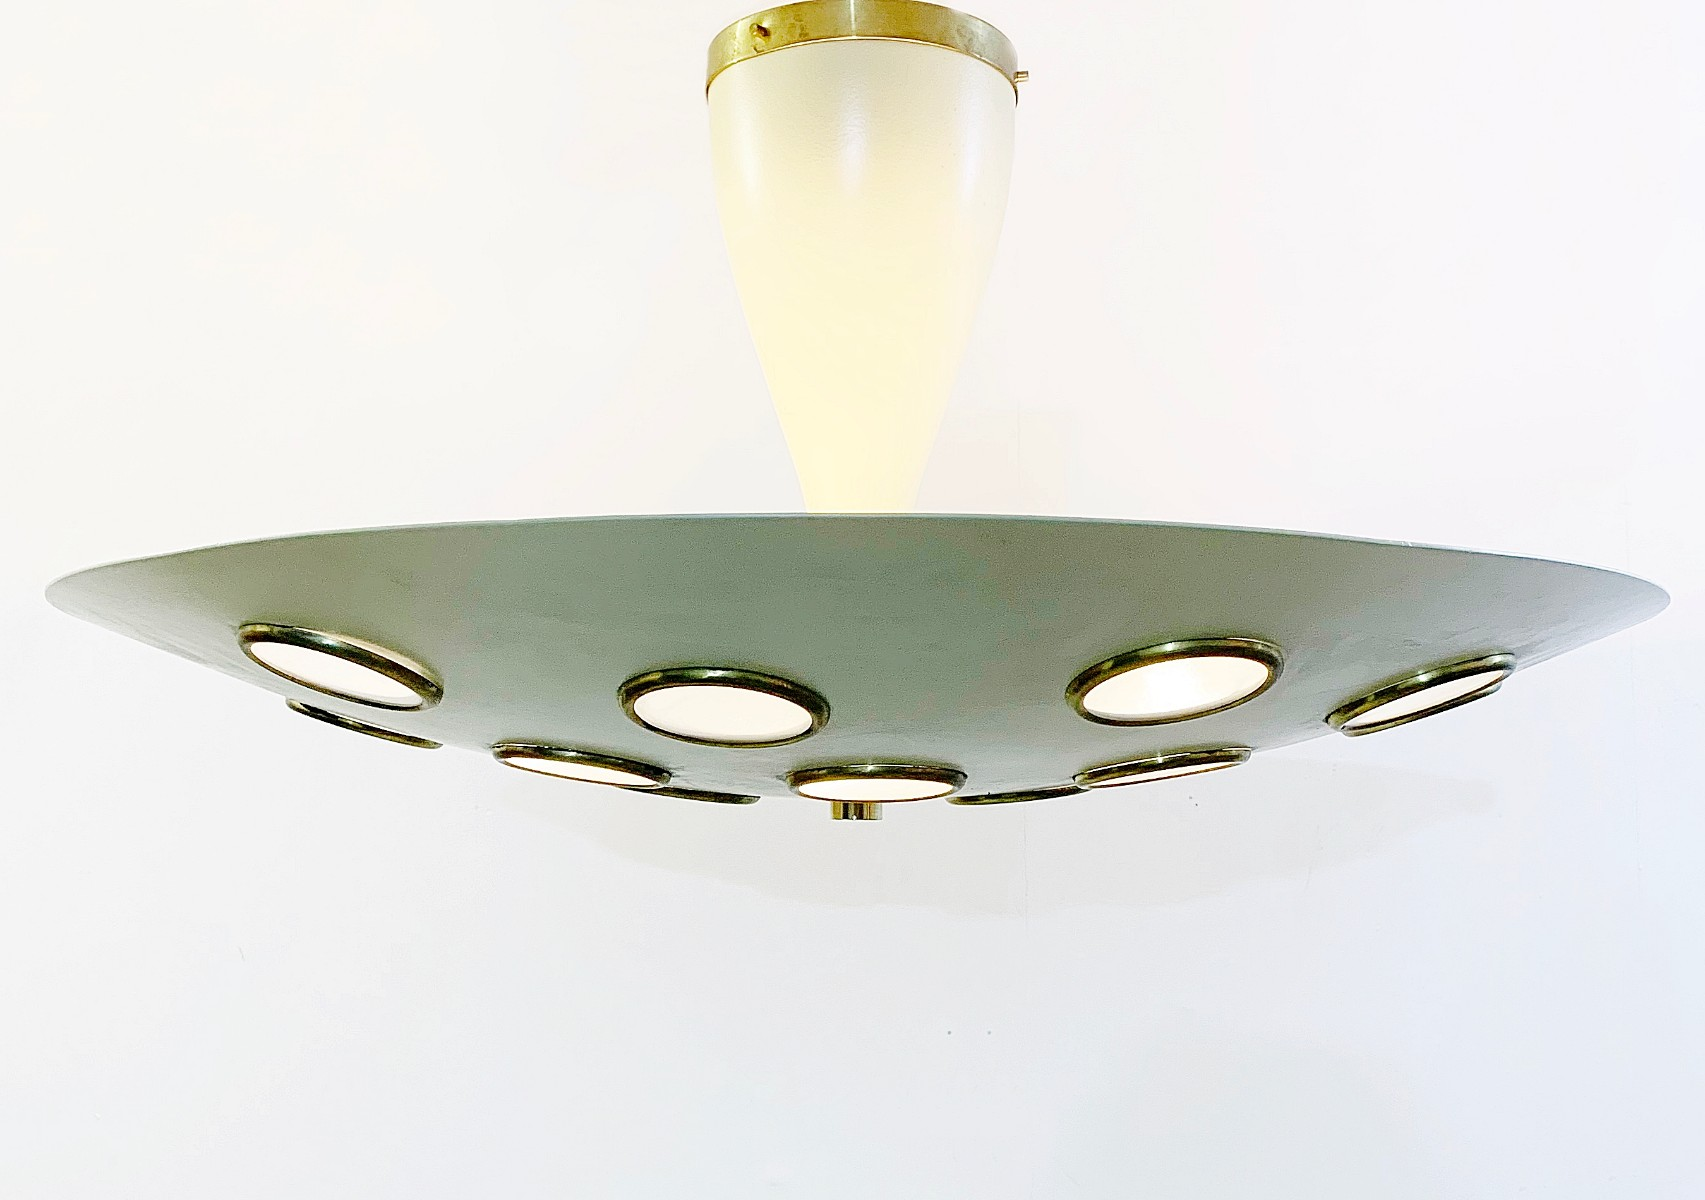 Lumen Italian 1950s Light Fixture With Circular Designs